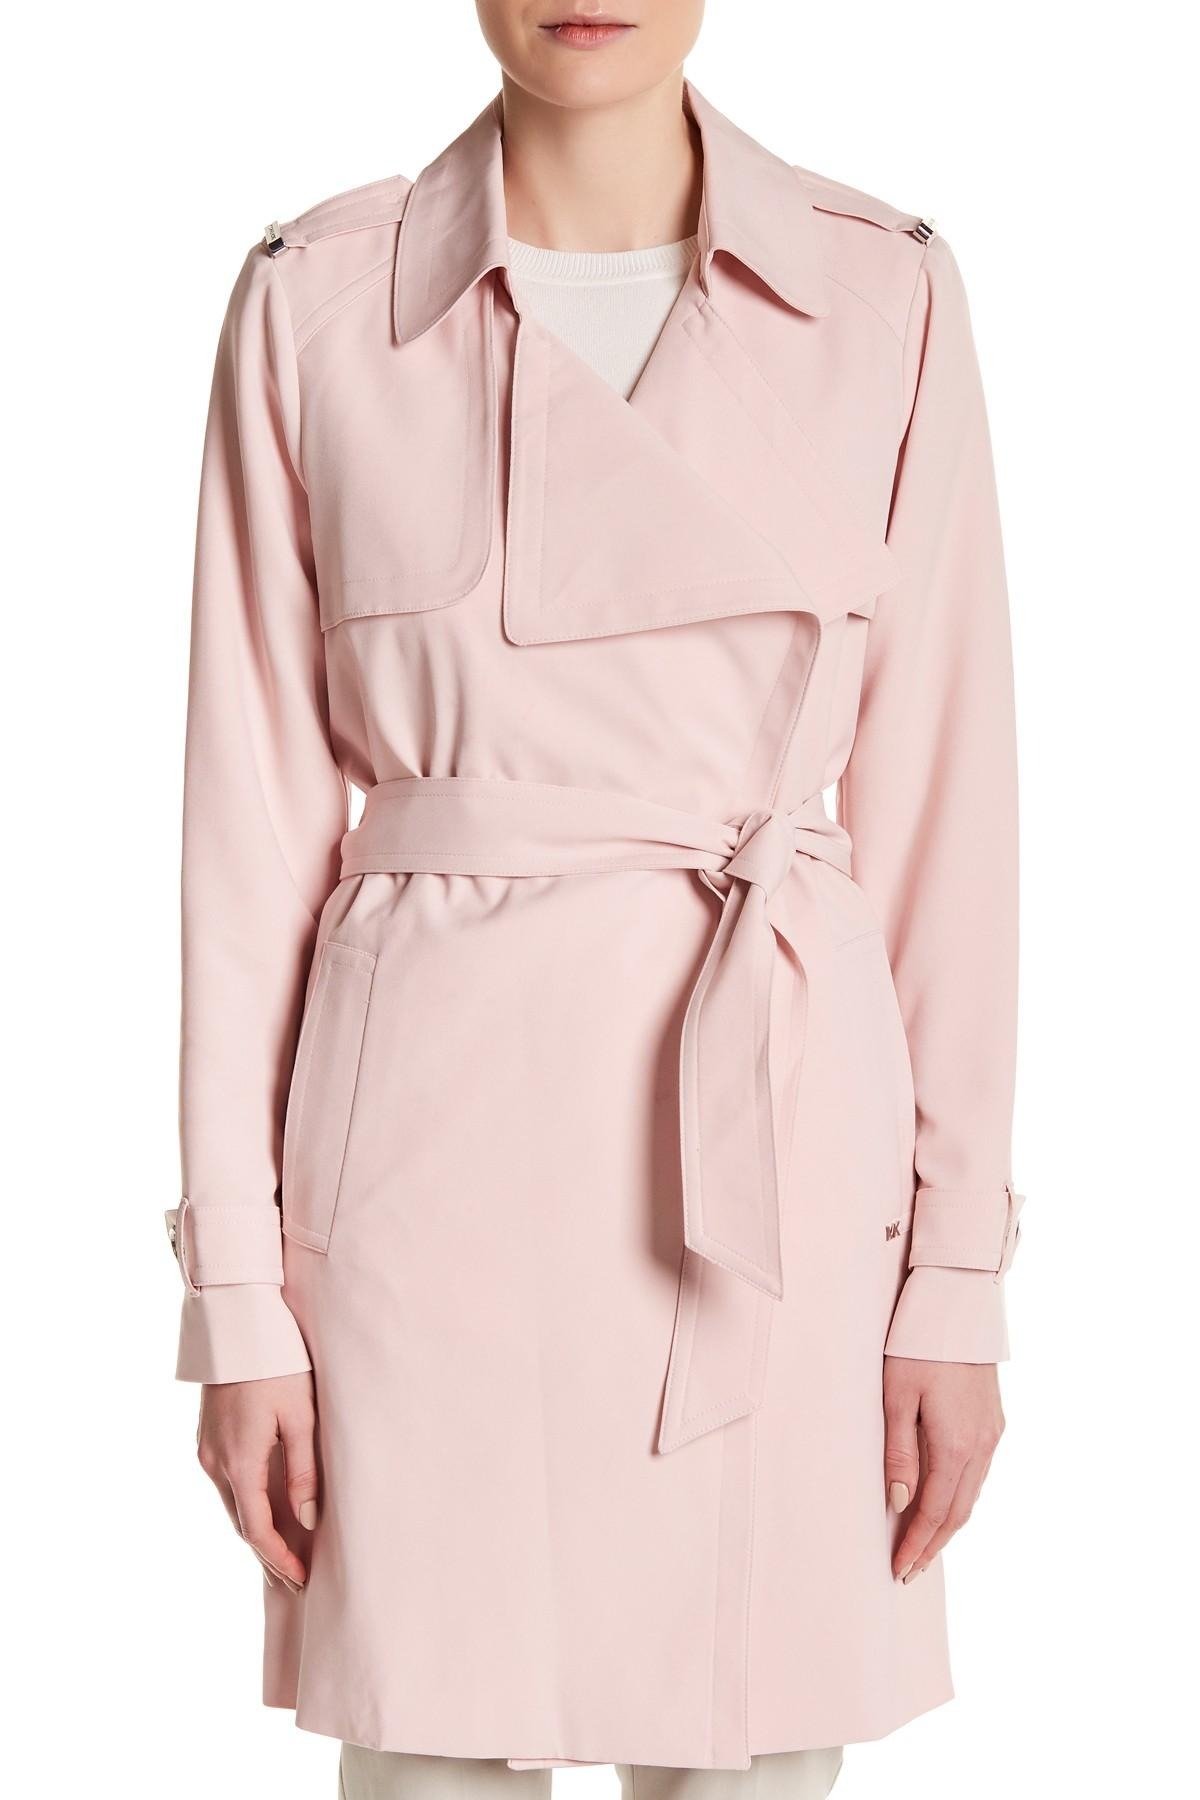 Lyst Michael Michael Kors Belted Trench Coat In Pink